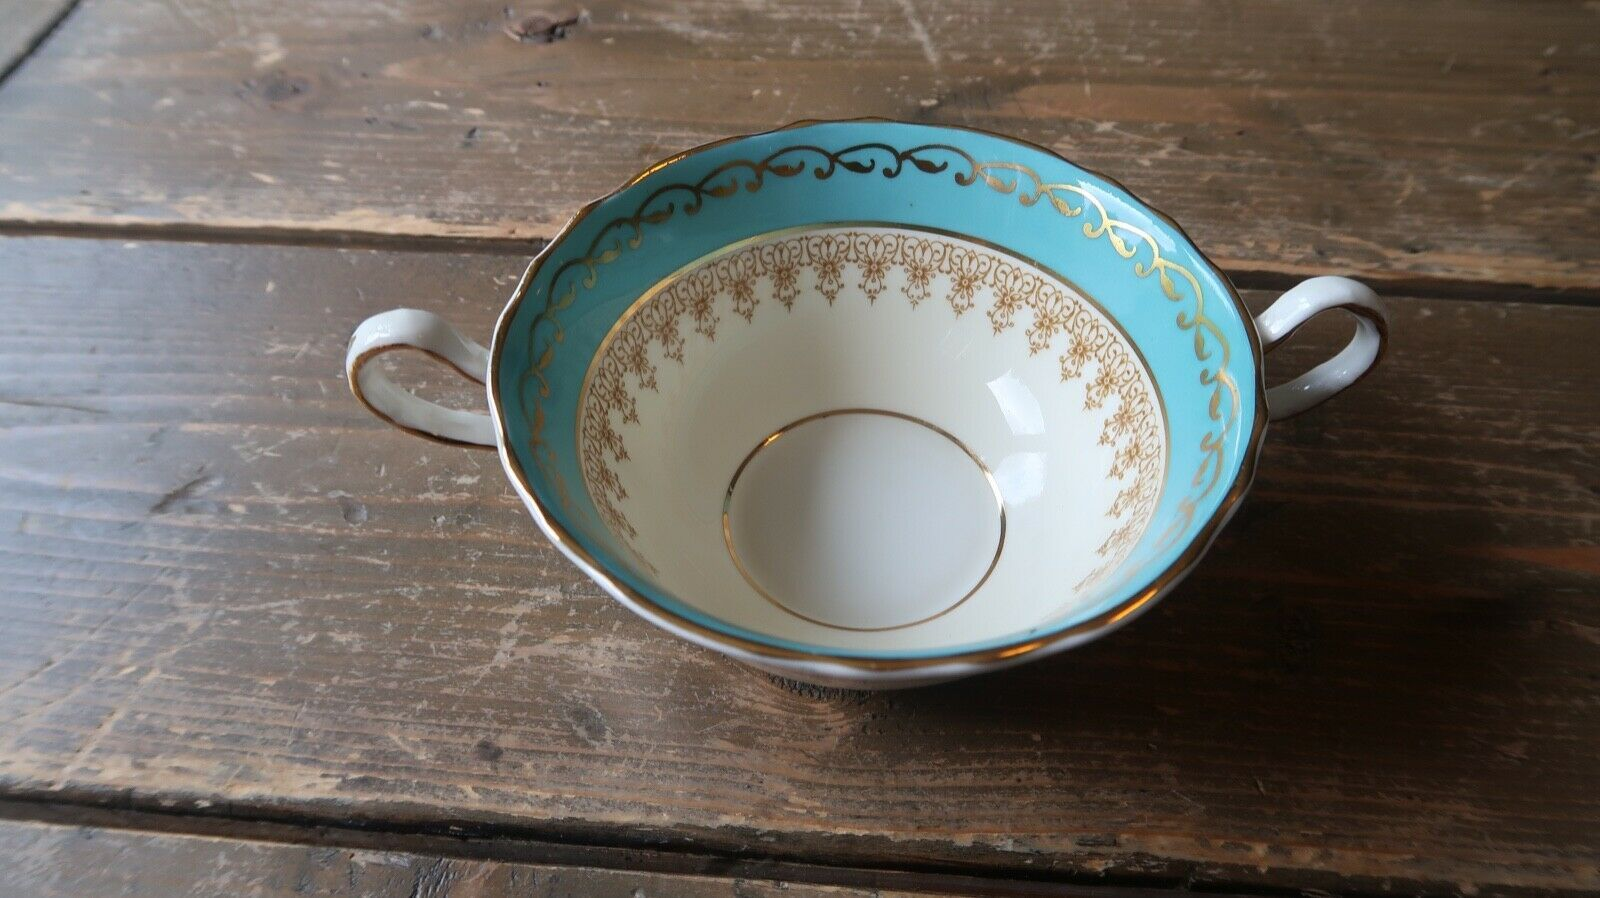 """Antique Aynsley Aqua Blue 7611 Soup Bowl 6.5"""" from handle to handle - $24.74"""